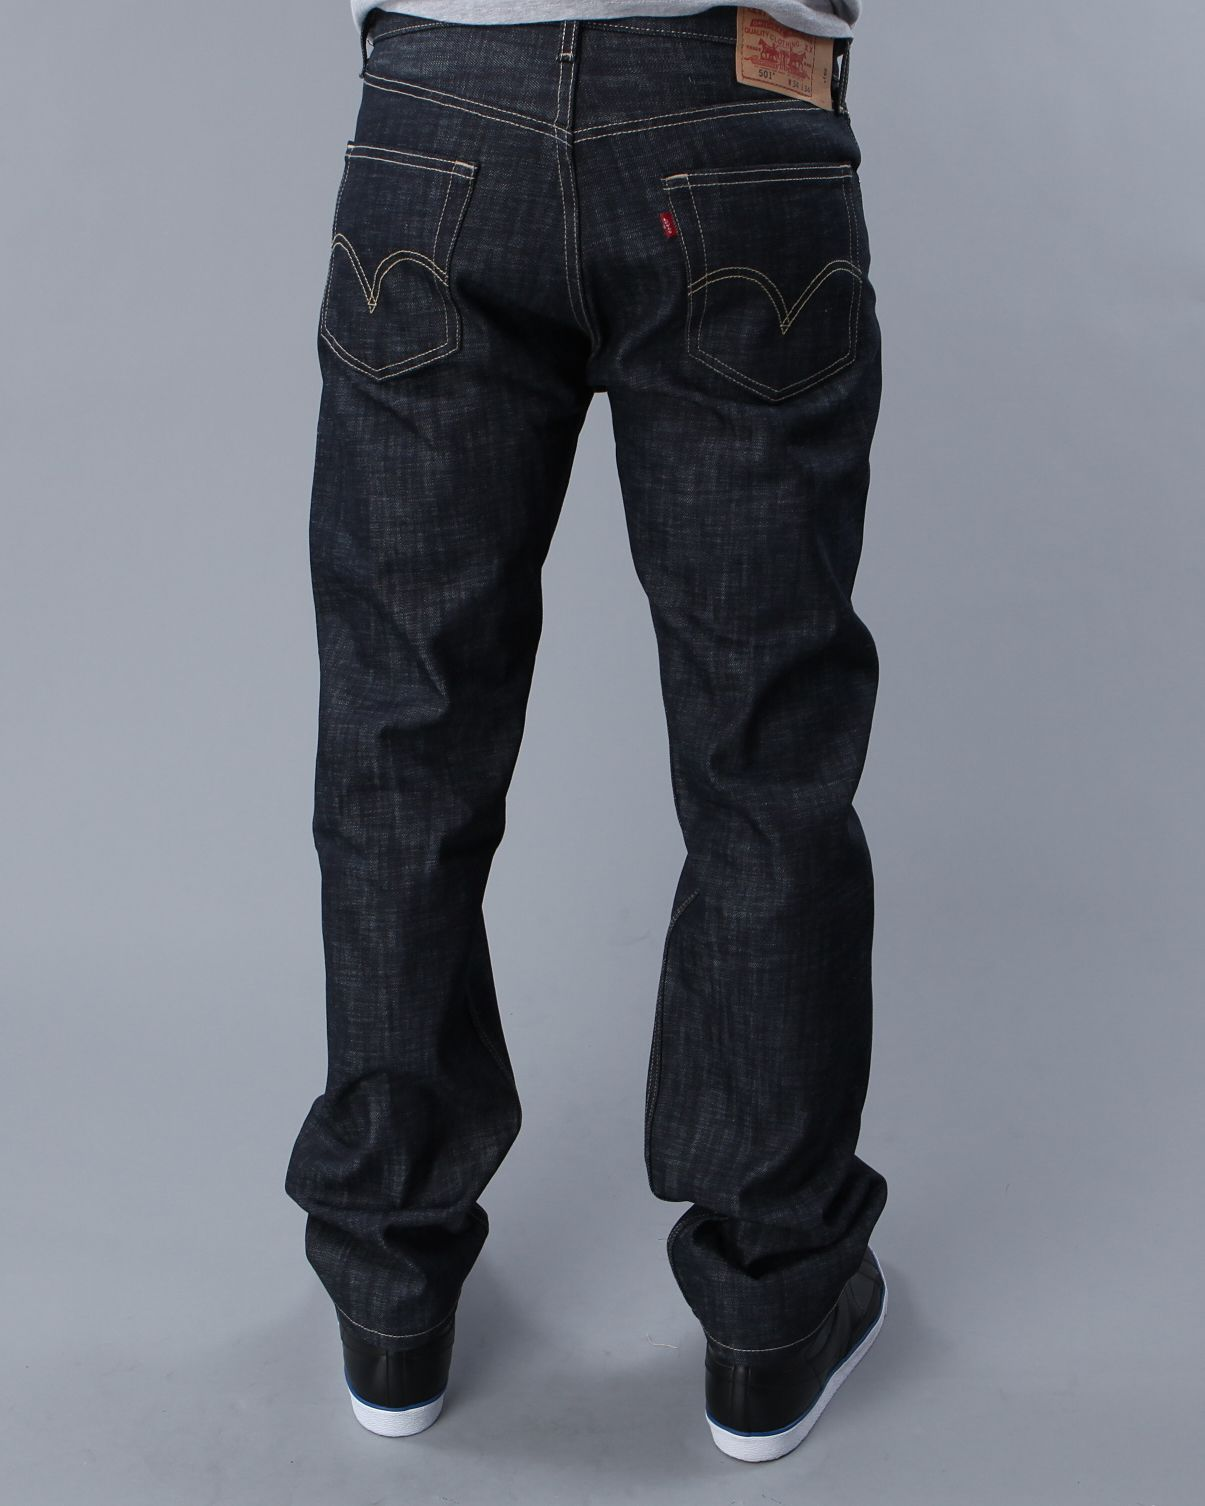 b57090a3 Levis 501 shrink to fit Men's jeans. The original waxed cowboy jean. Never  to go out of style